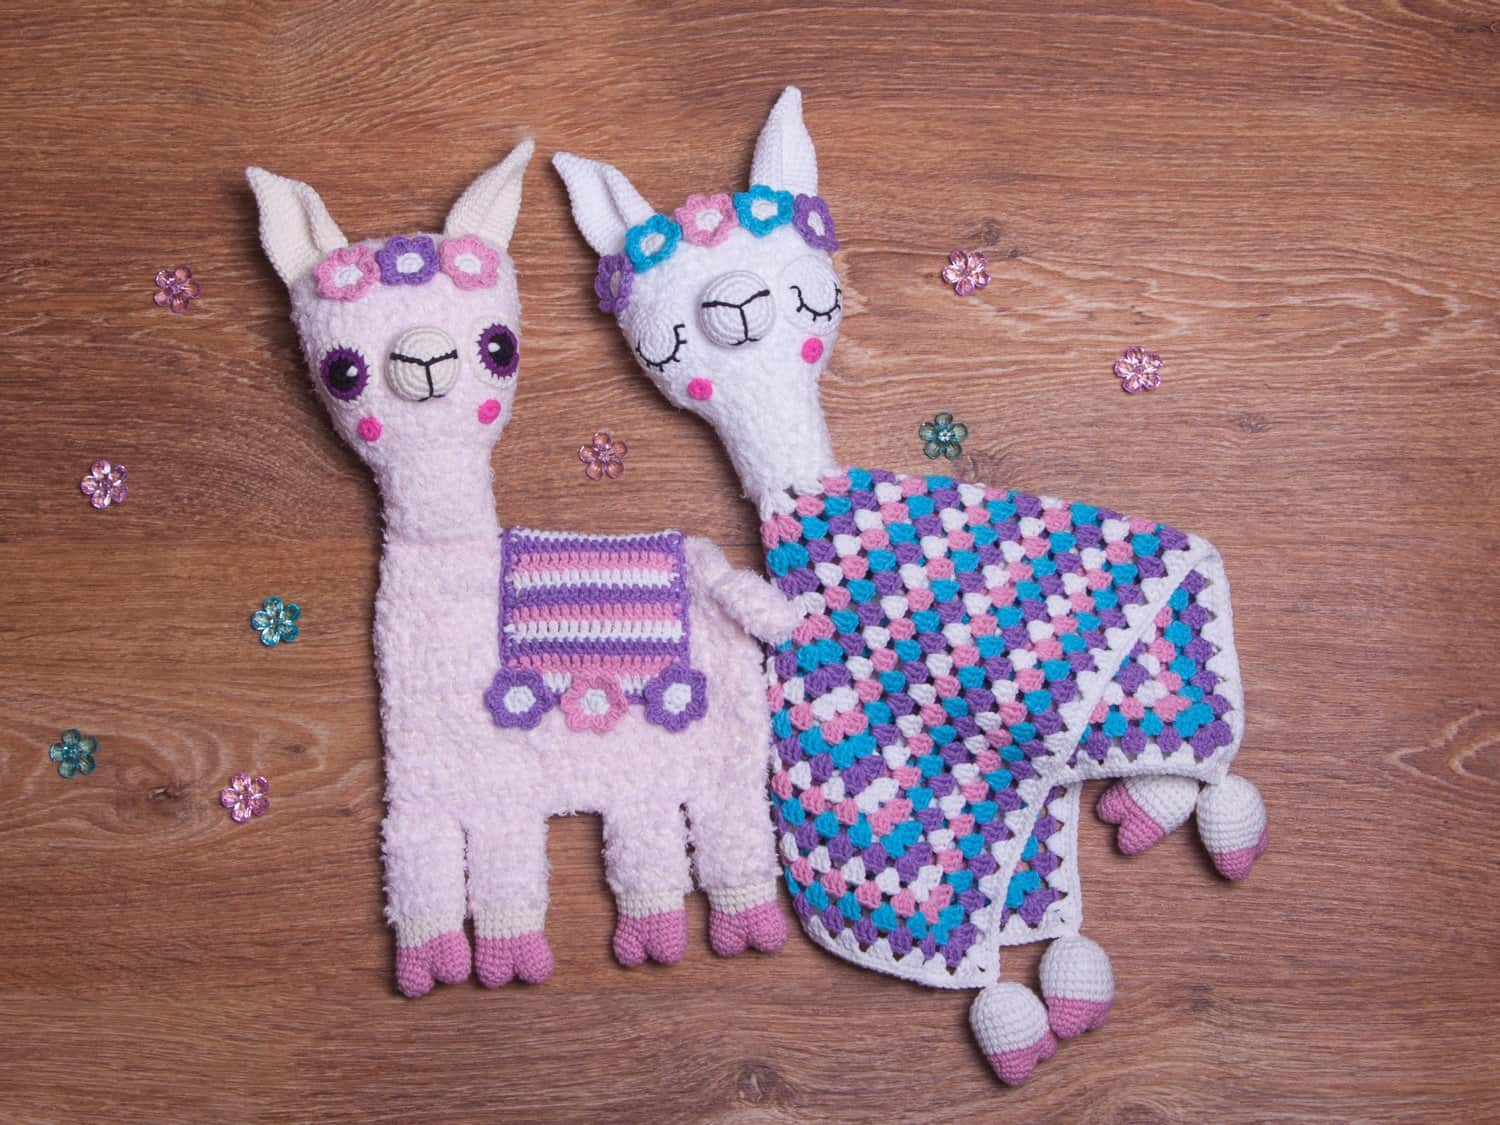 Llama Lovey and Ragdoll Crochet Patterns